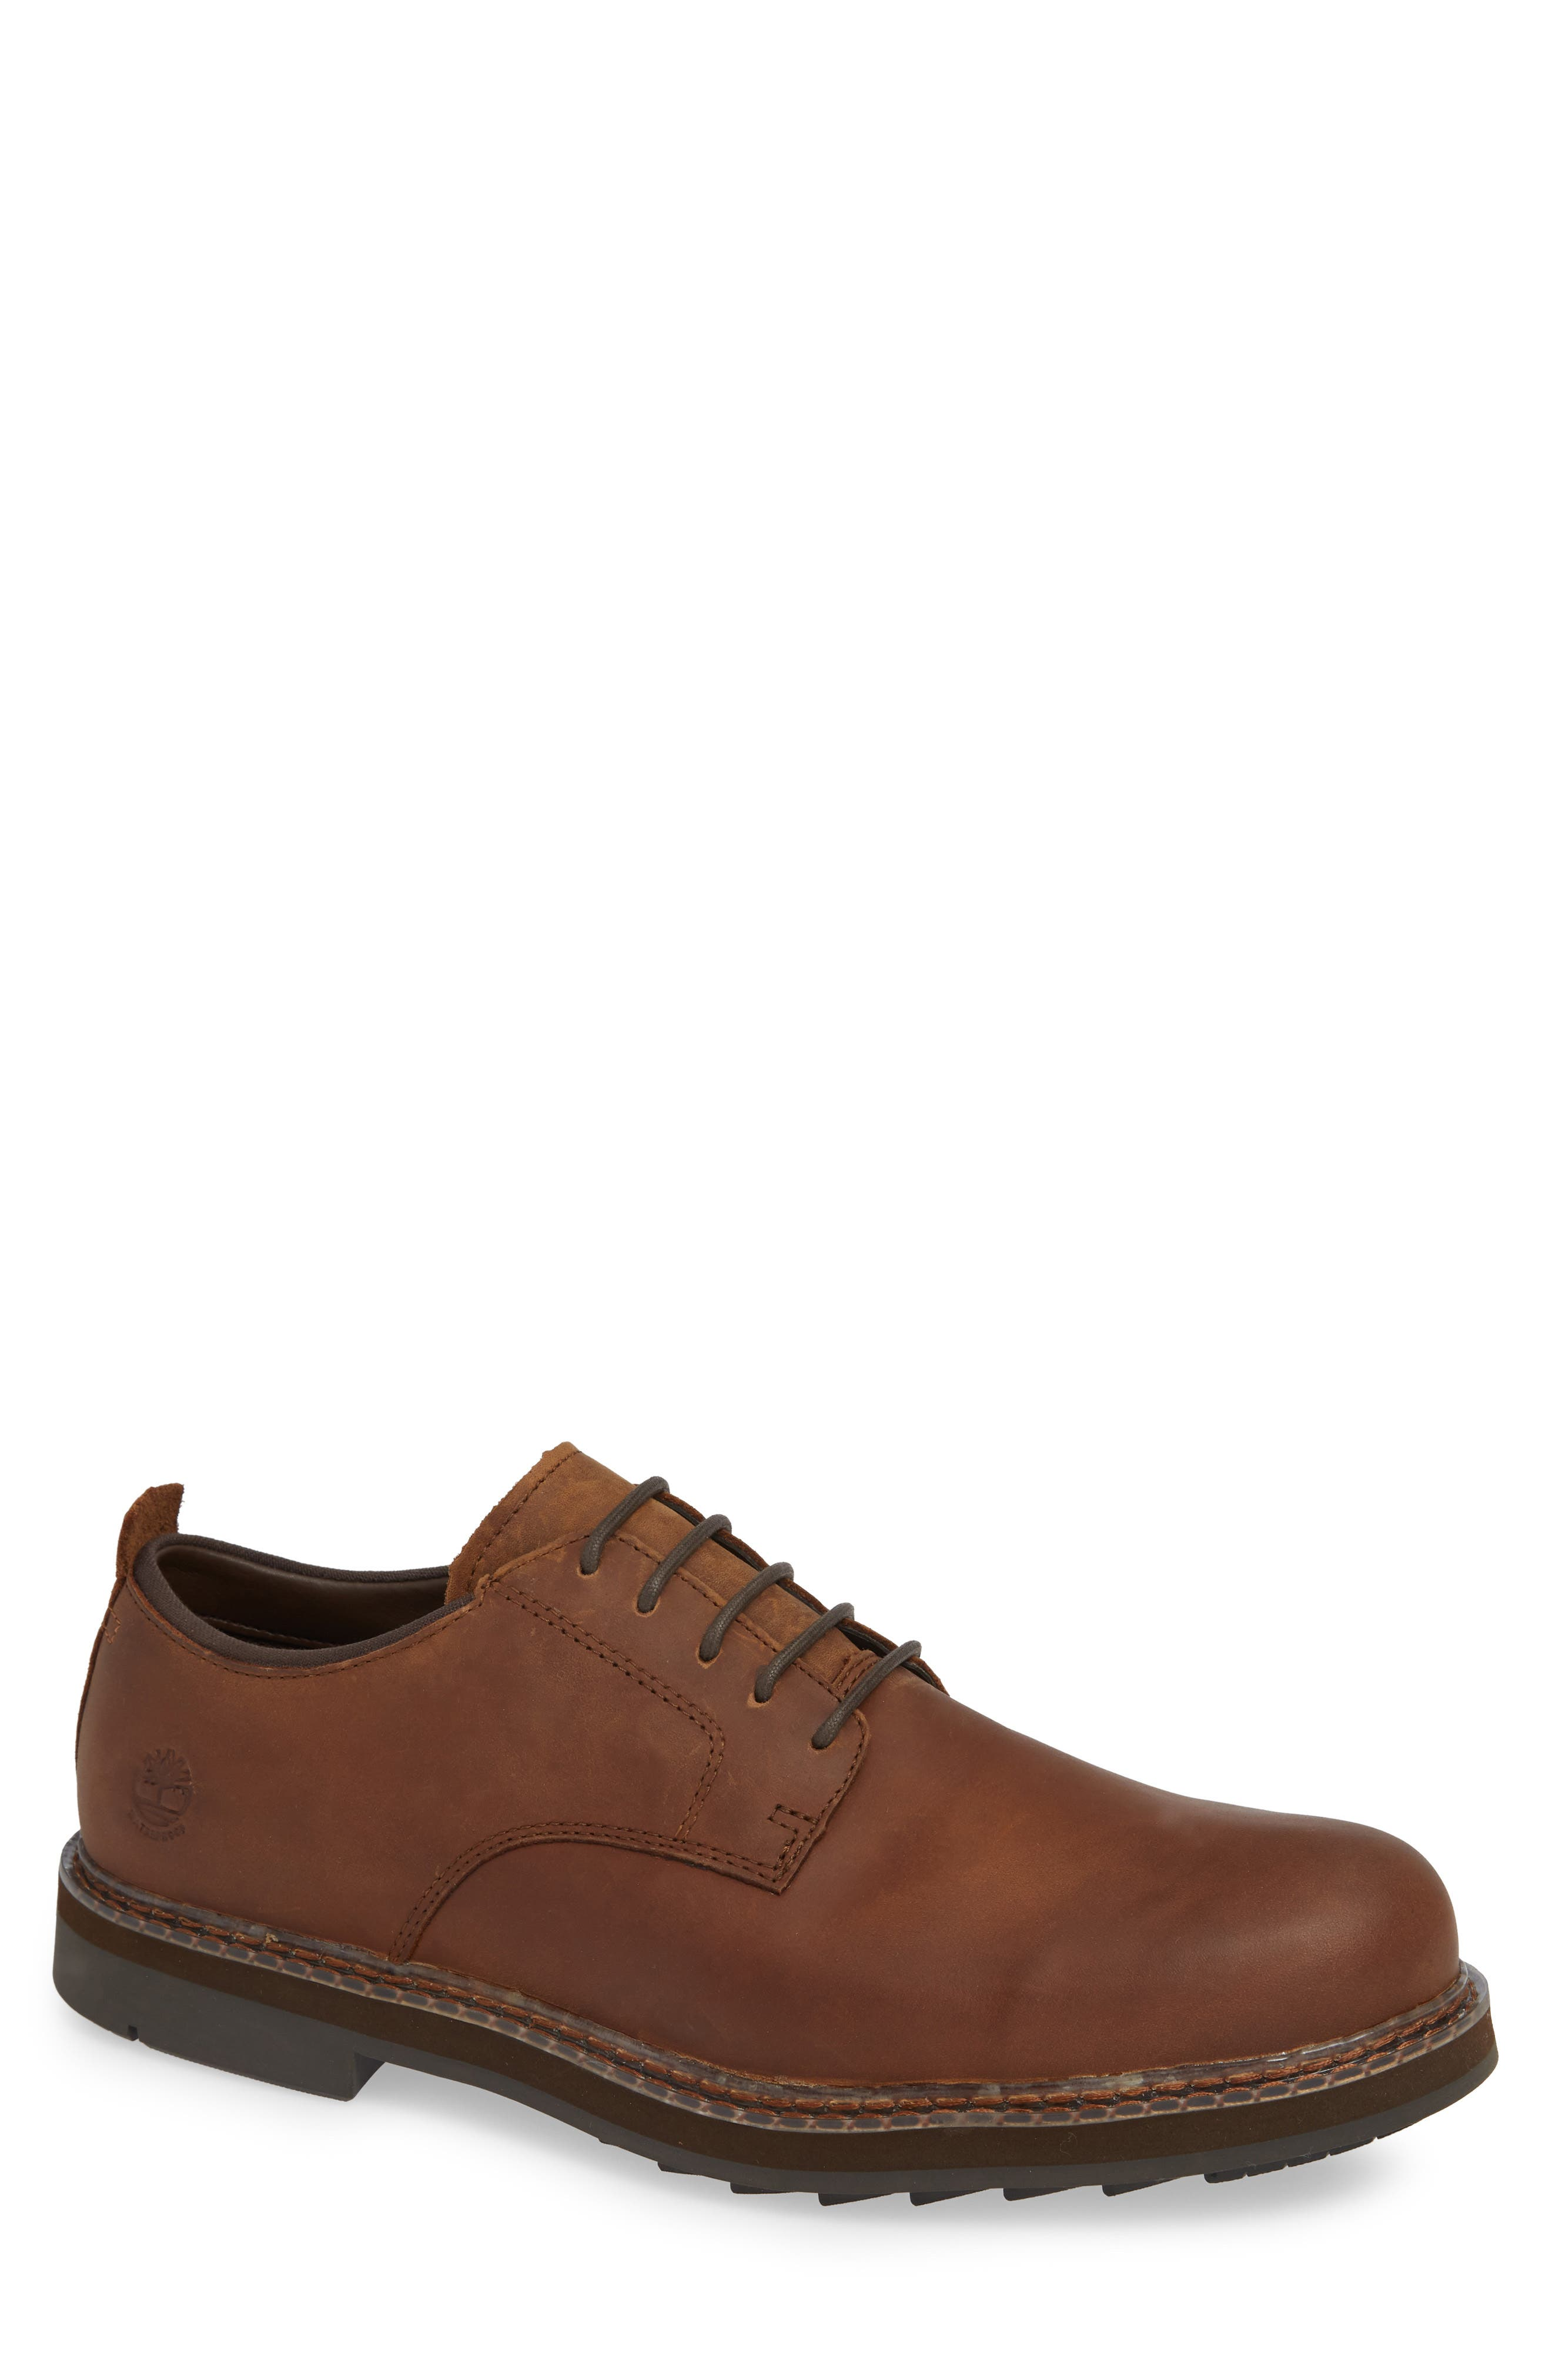 Squall Canyon Waterproof Plain Toe Derby, Main, color, COPPER LEATHER